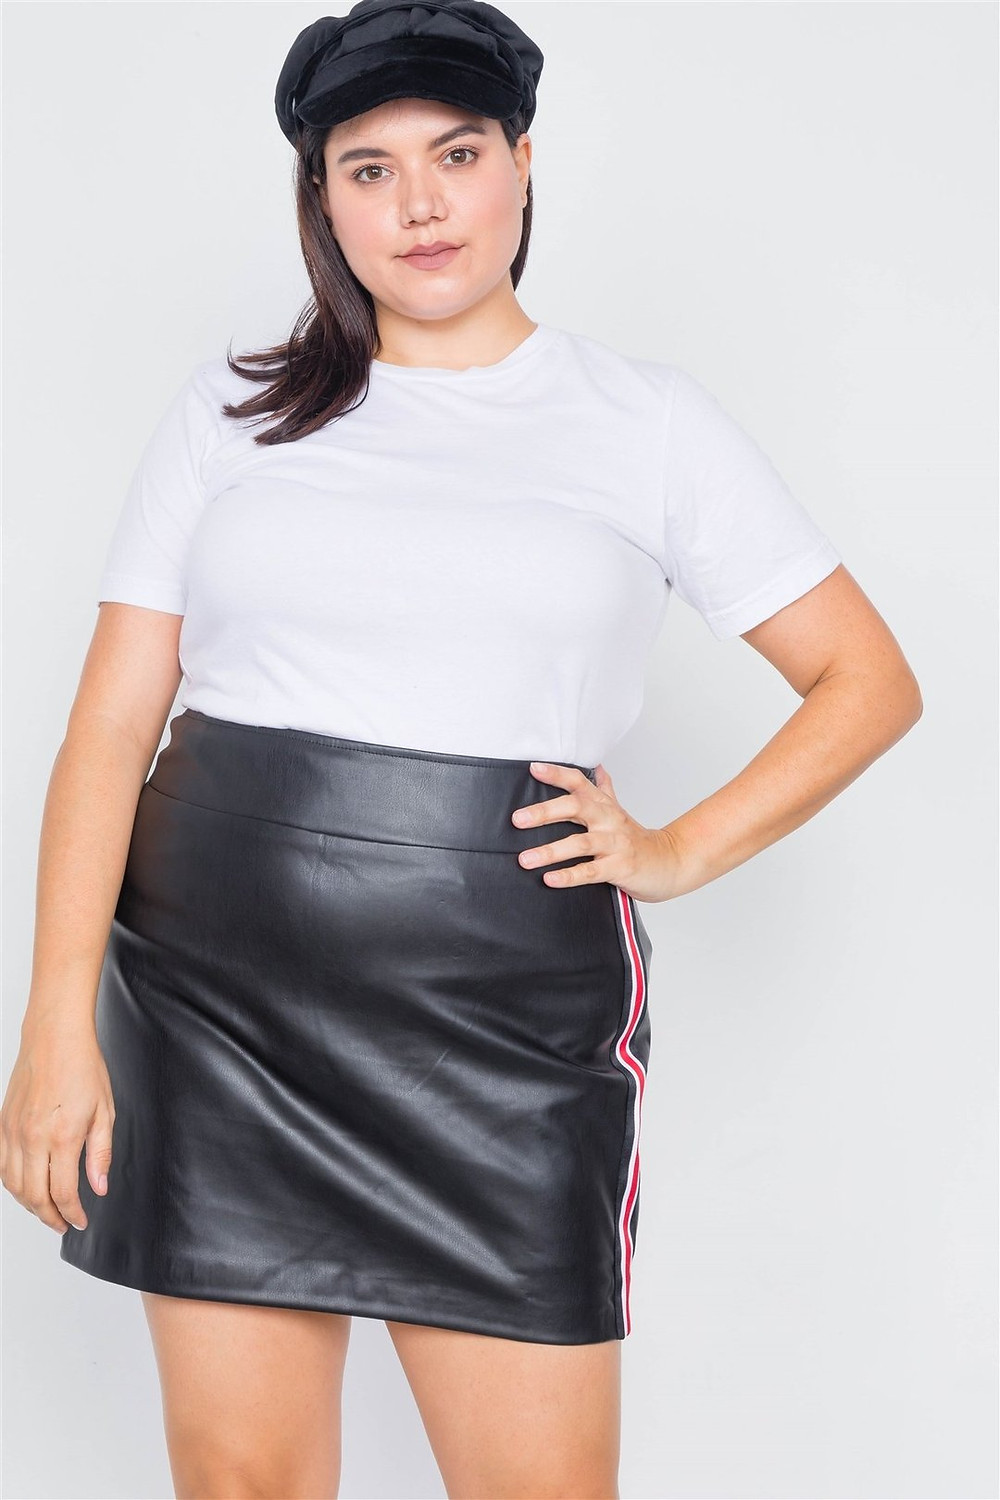 https://www.chivane-store.com/collections/plus-size-bottoms/products/tsh2-pd16403-id-40020